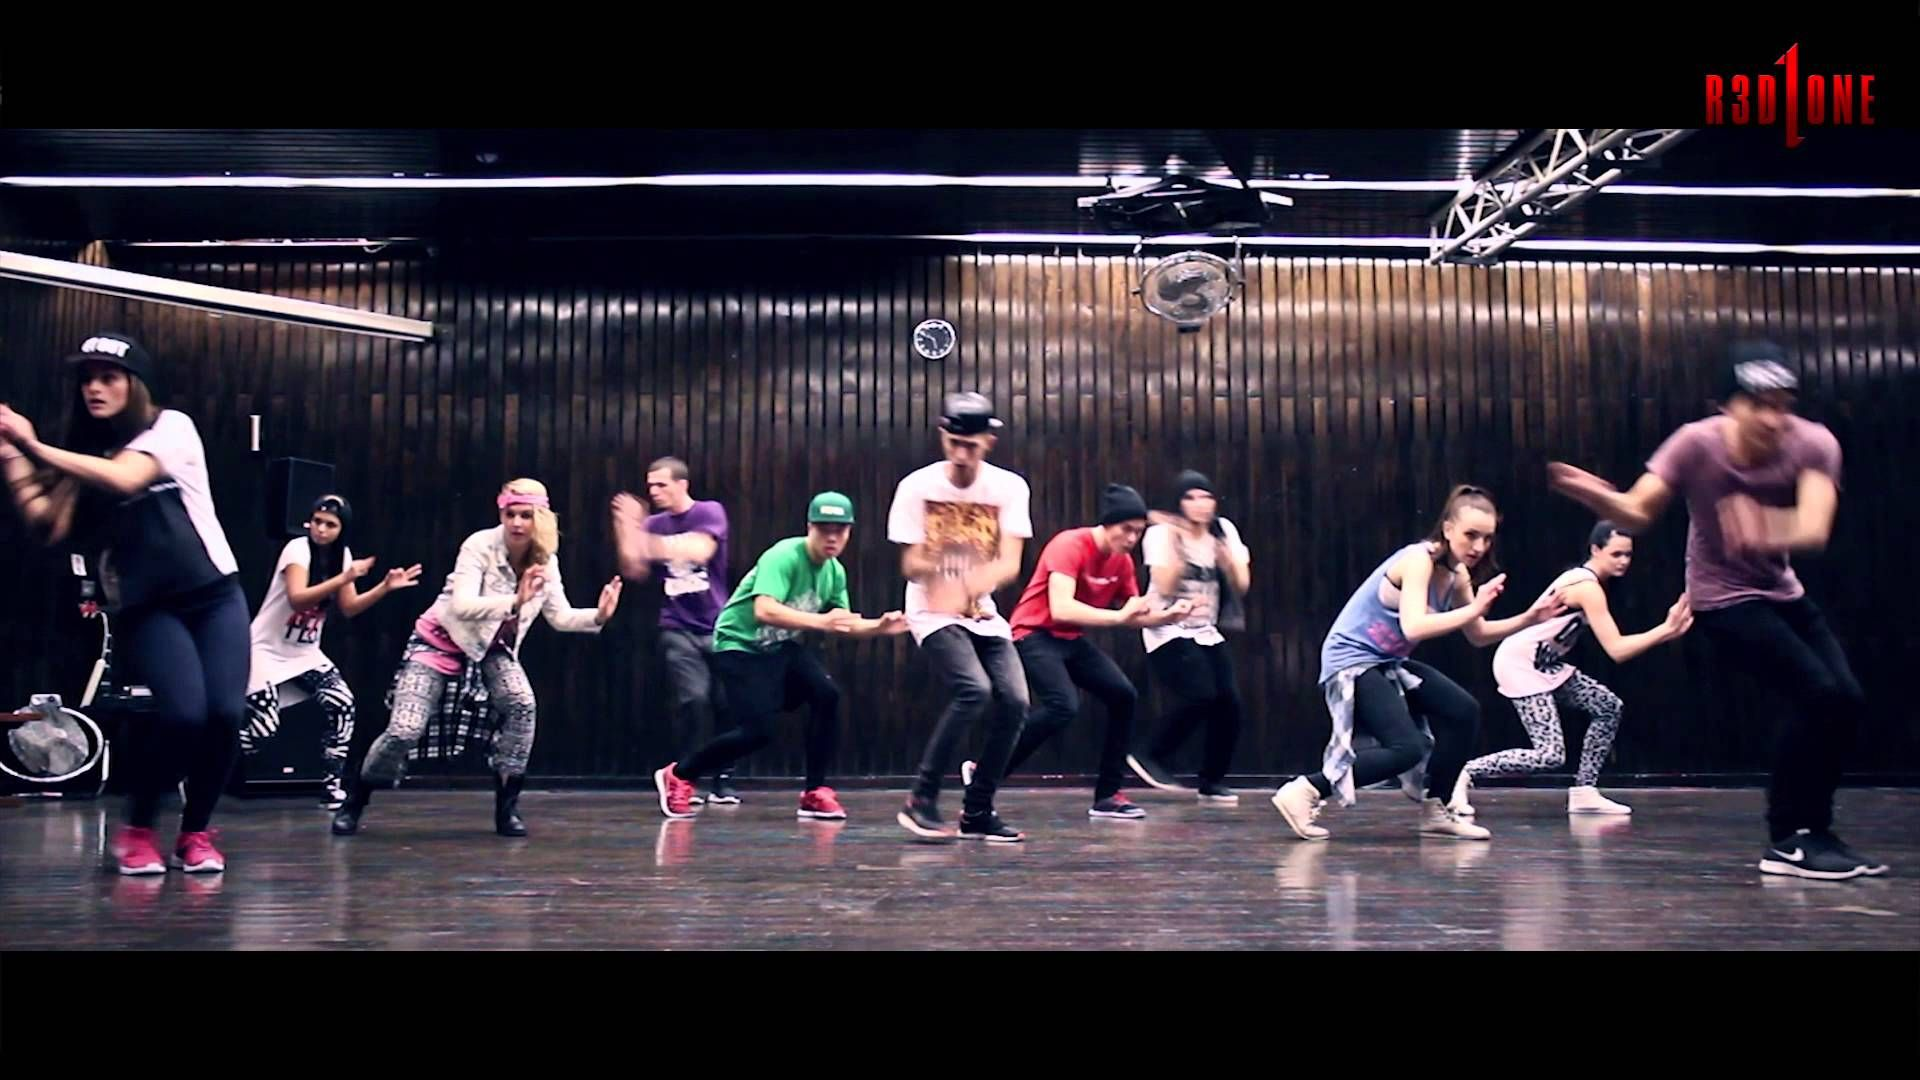 Duc Anh Tran Choreography Ace Hood We On Dukiofficial Amy